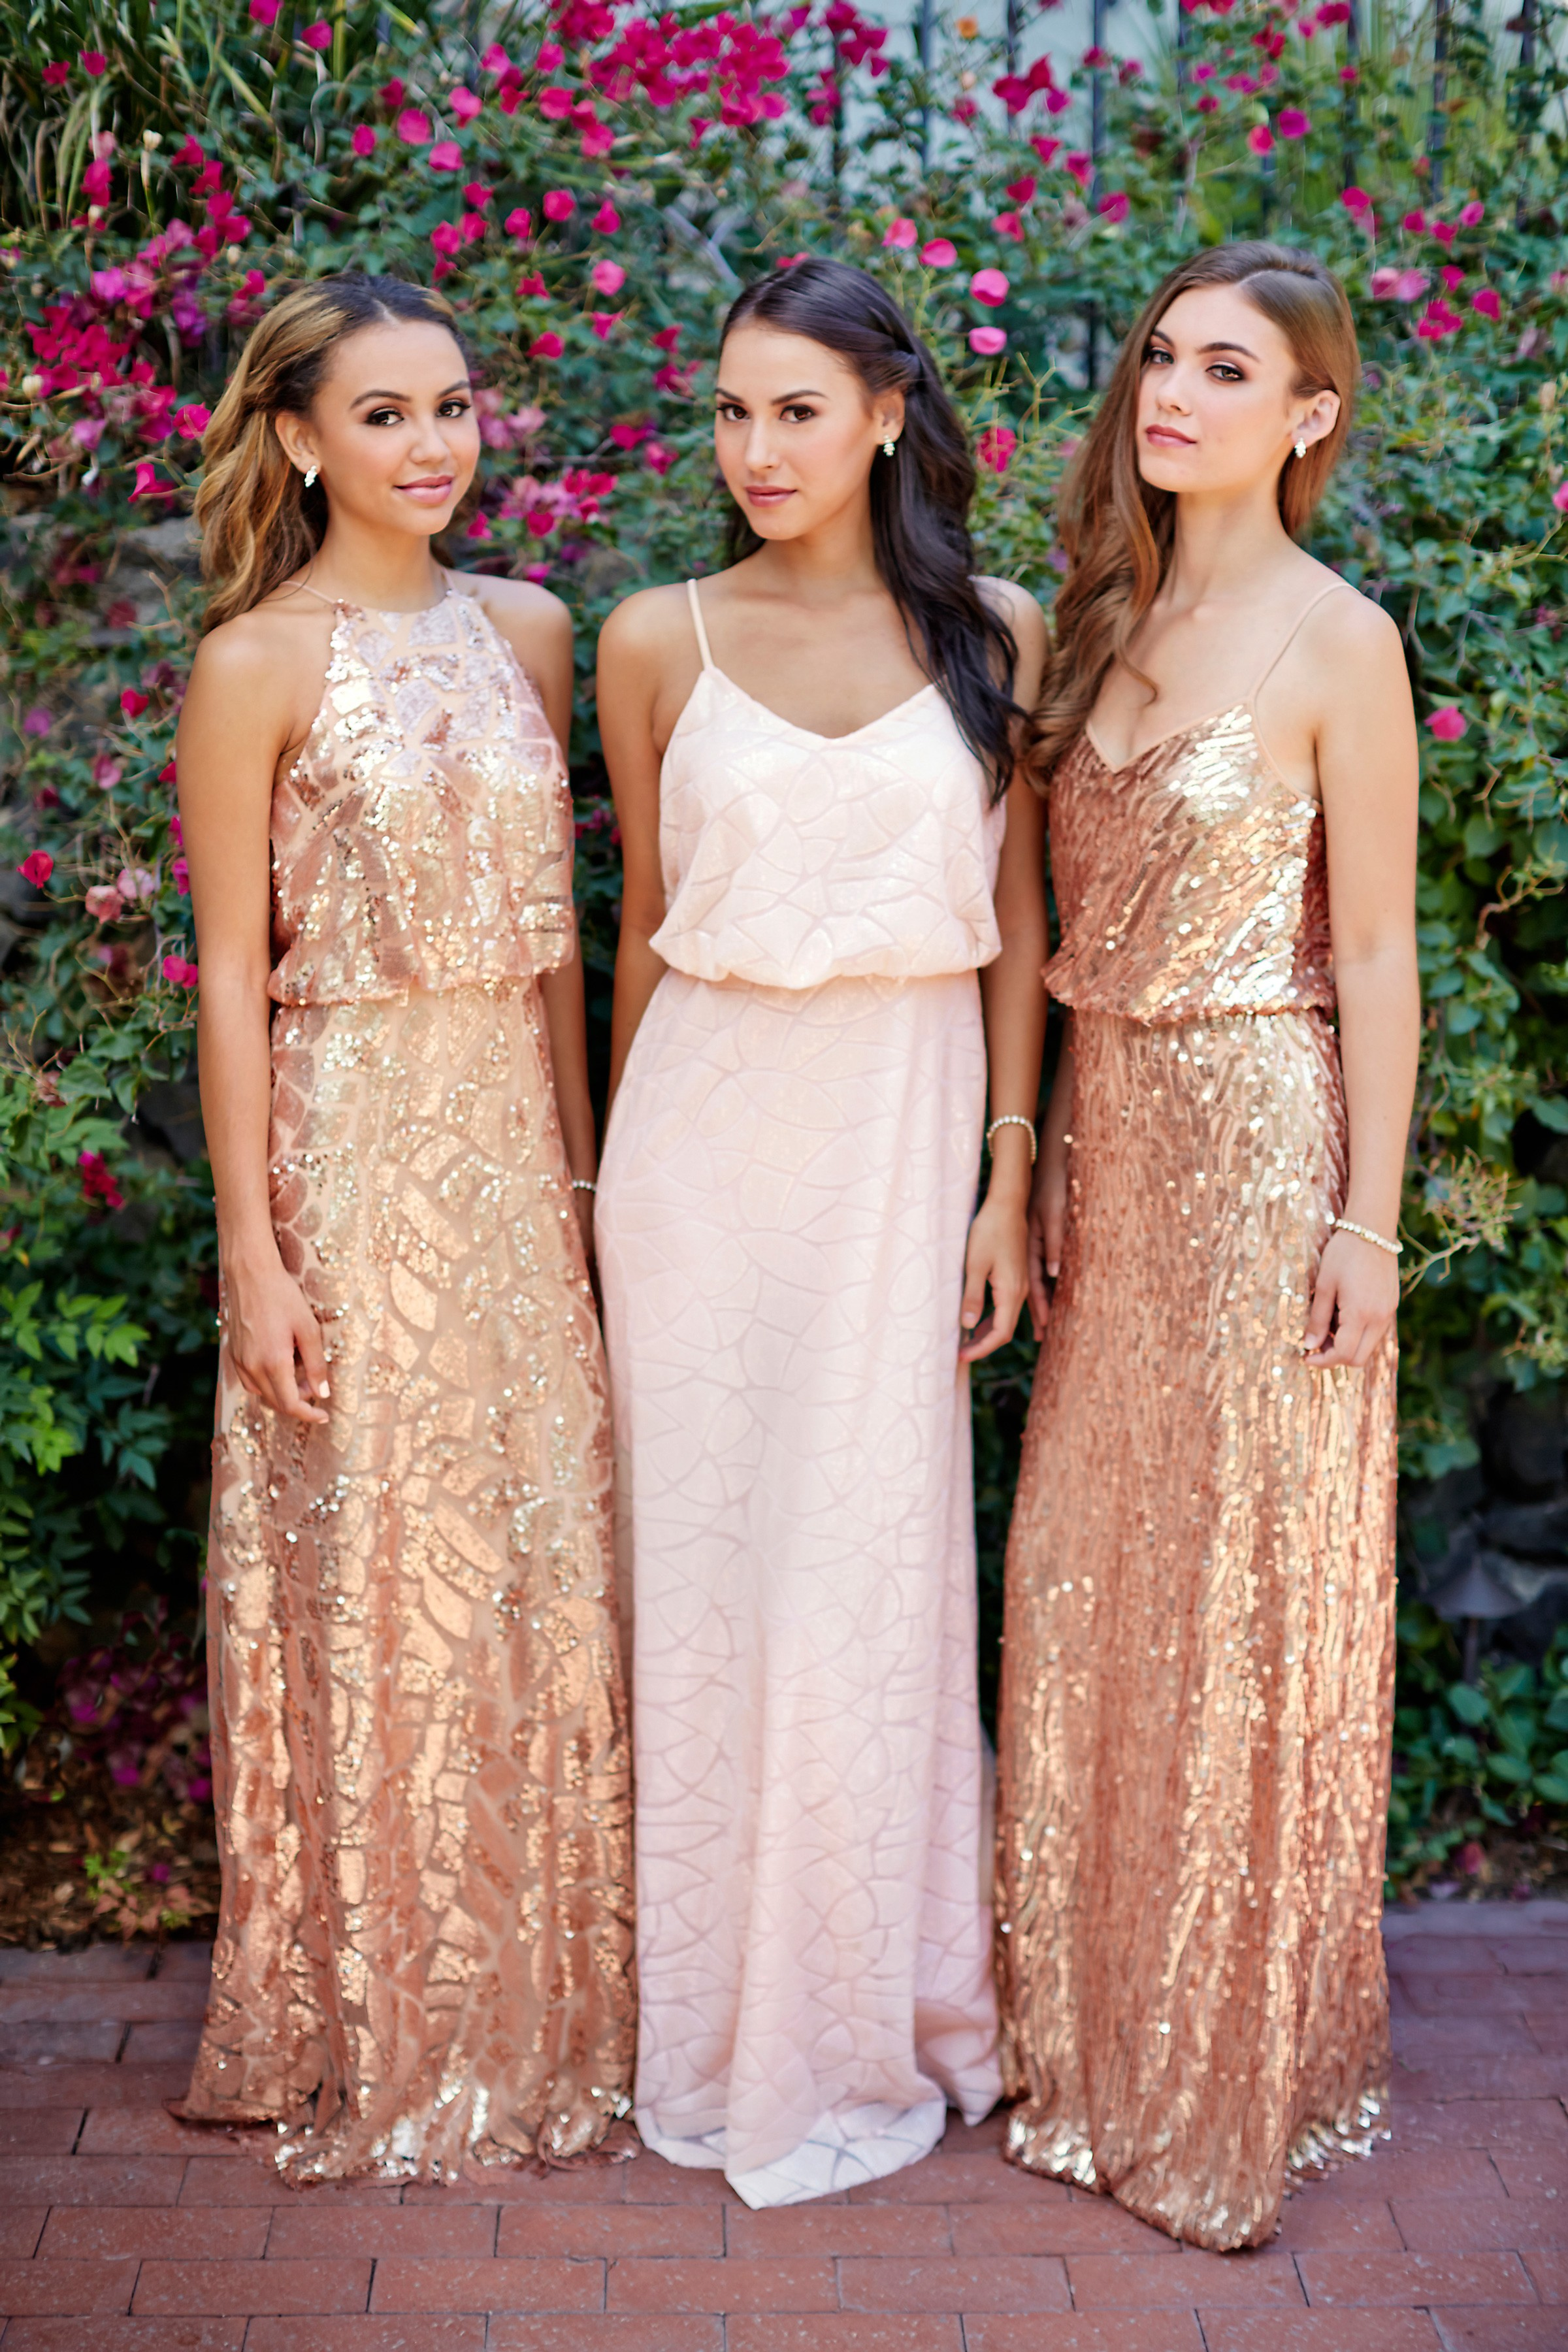 olive_tiffany_courtney_sequin_bridesmaid_dresses-2_2